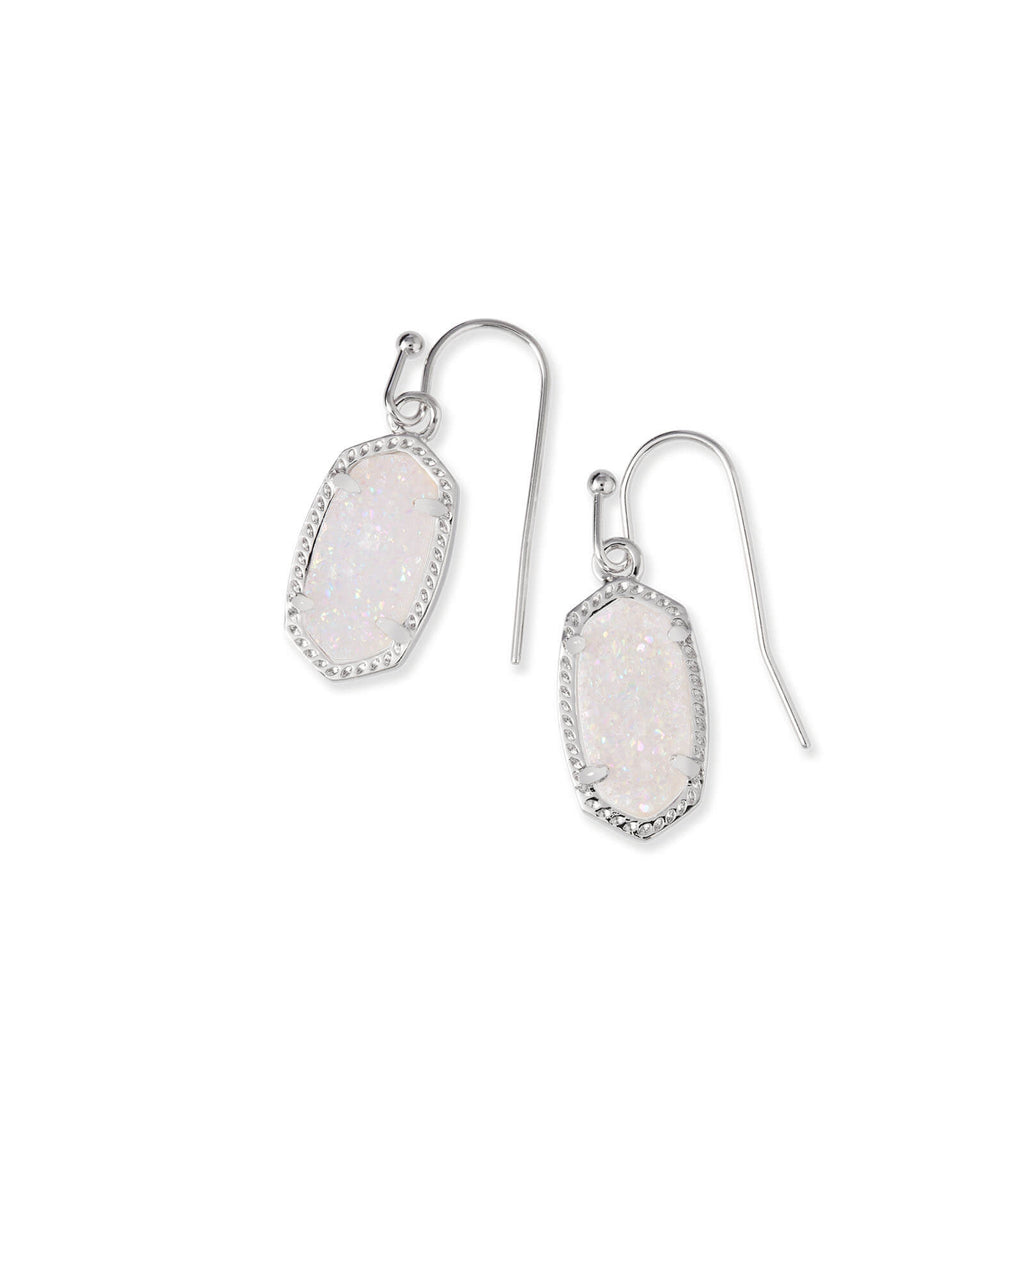 Kendra Scott Lee Earrings - Silver Iridescent Drusy